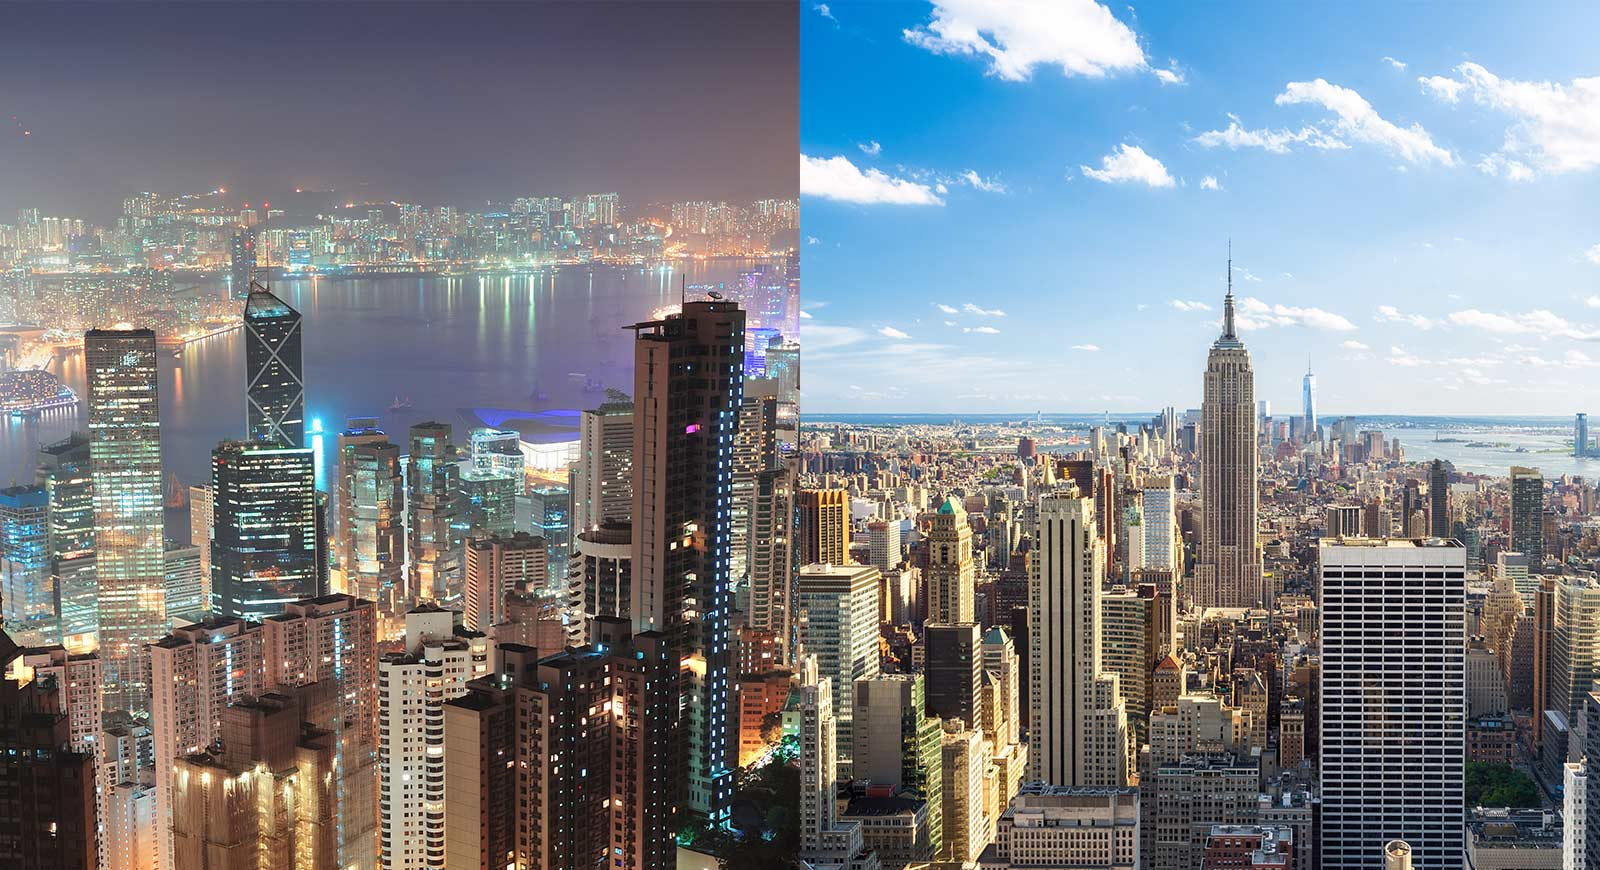 Hong Kong - New York